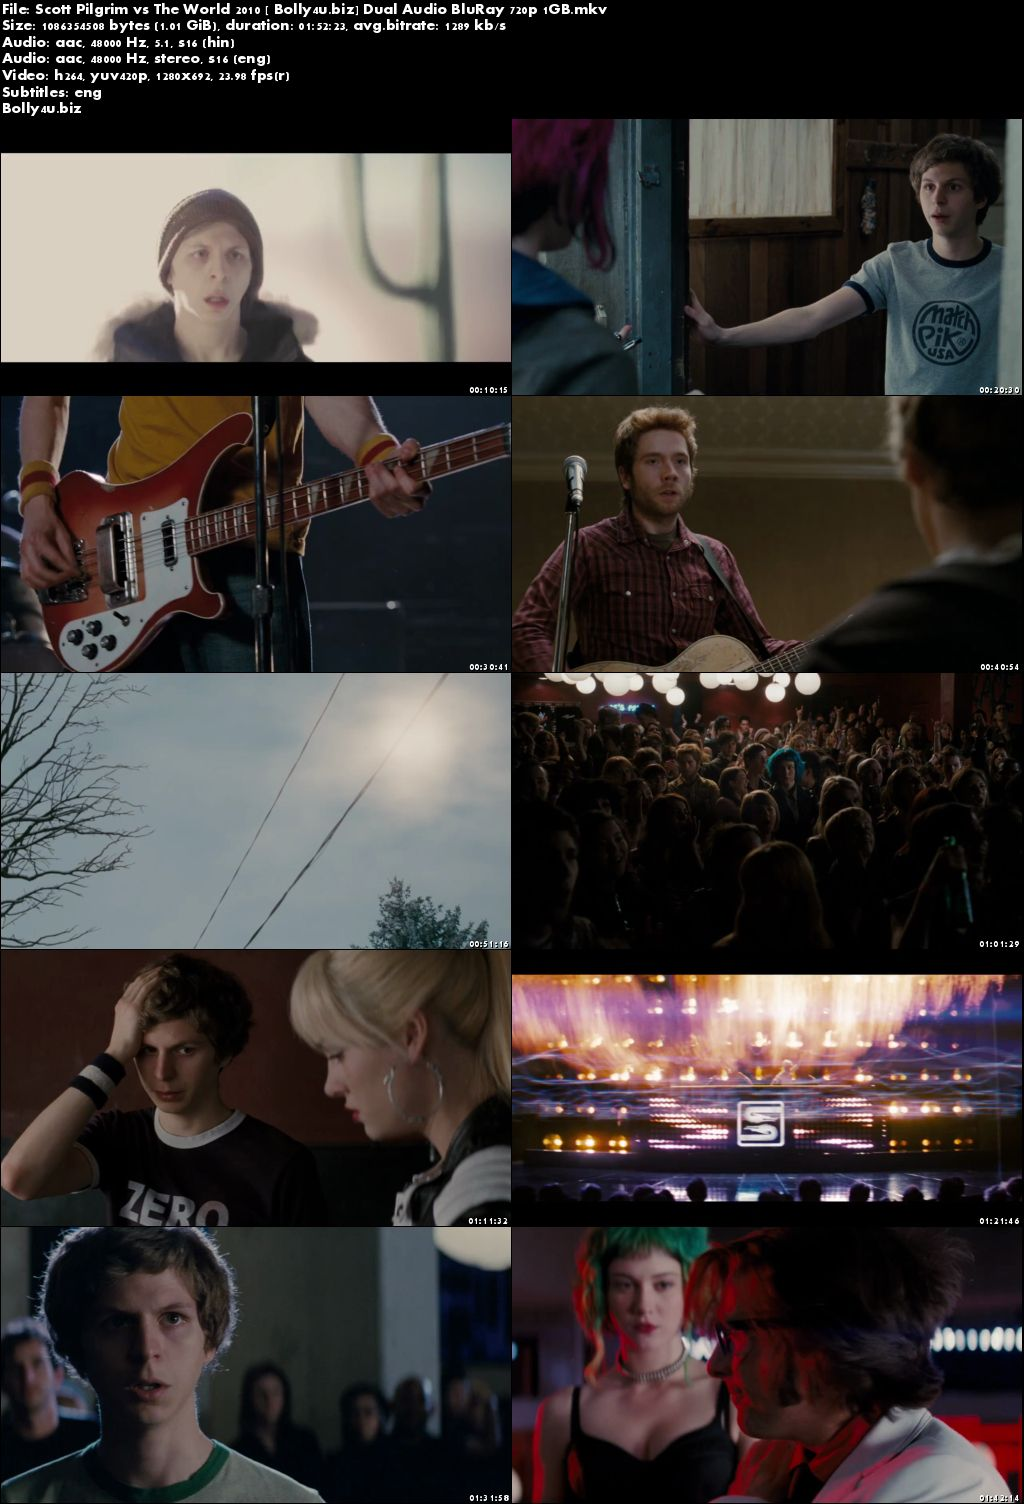 Scott Pilgrim vs The World 2010 BRRip 1GB Hindi Dual Audio 720p Download